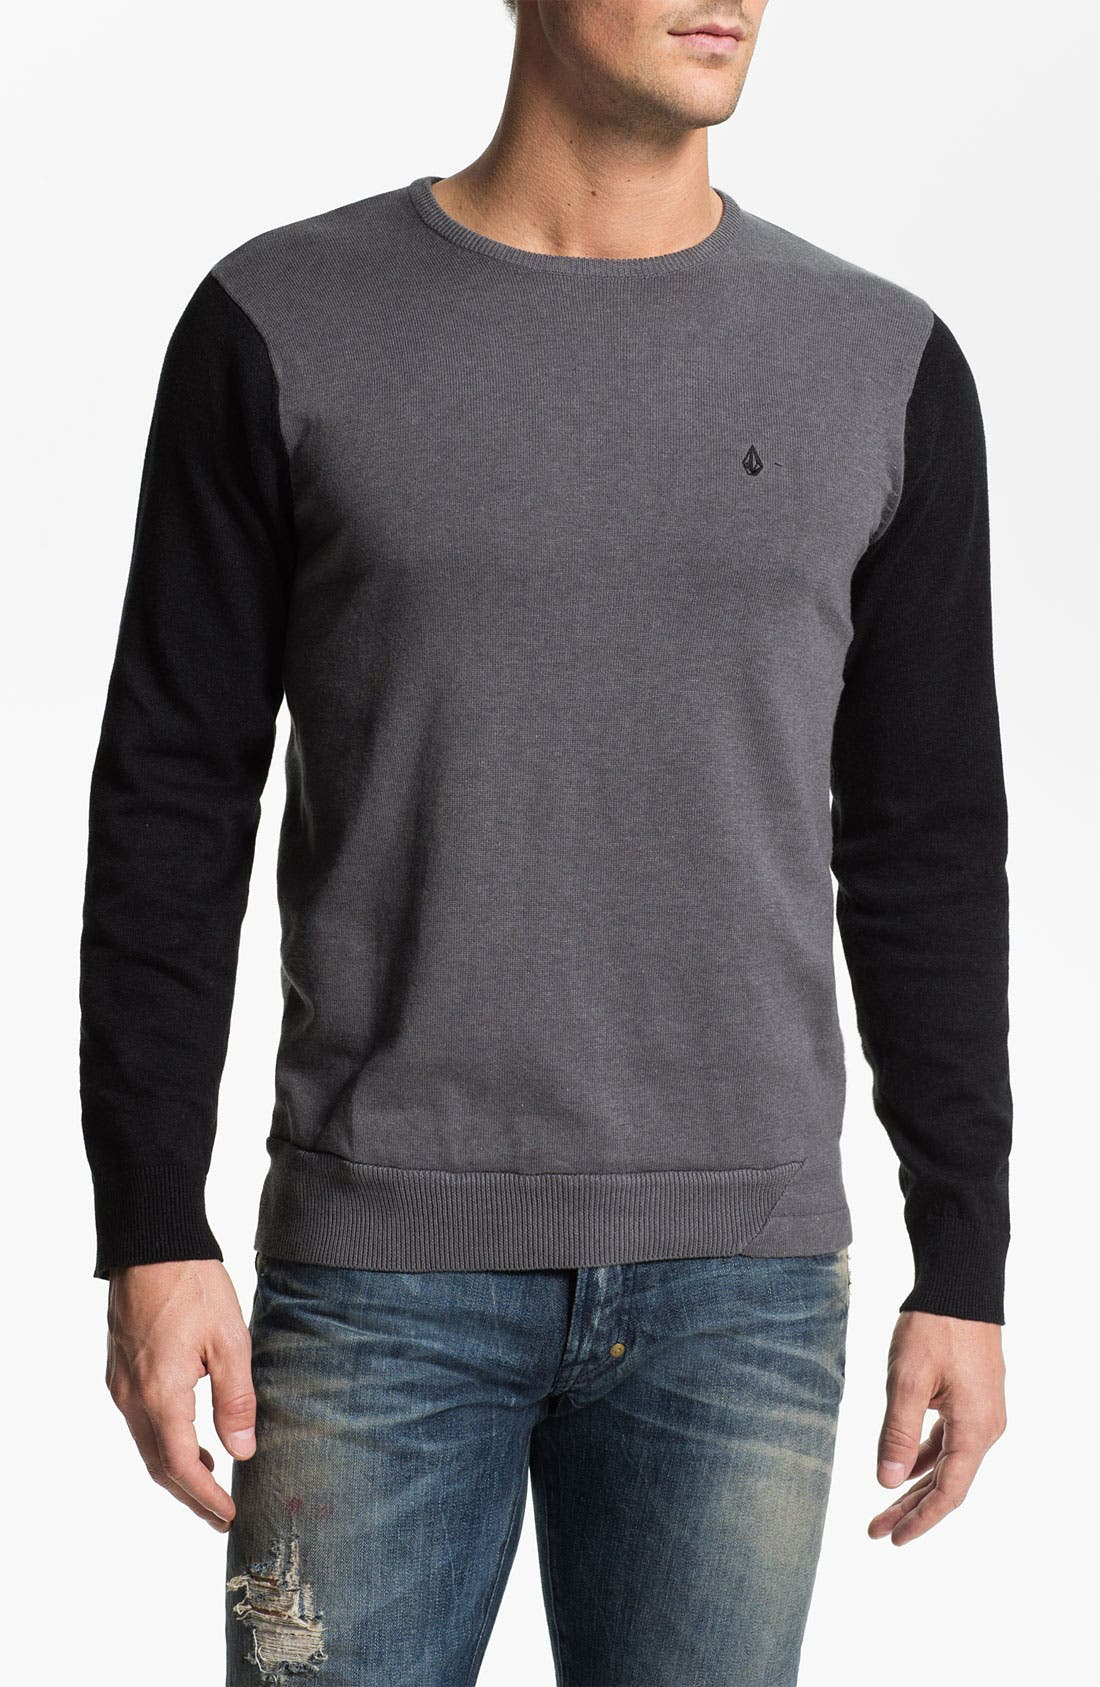 Main Image - Volcom 'Other Circle' Crewneck Sweater